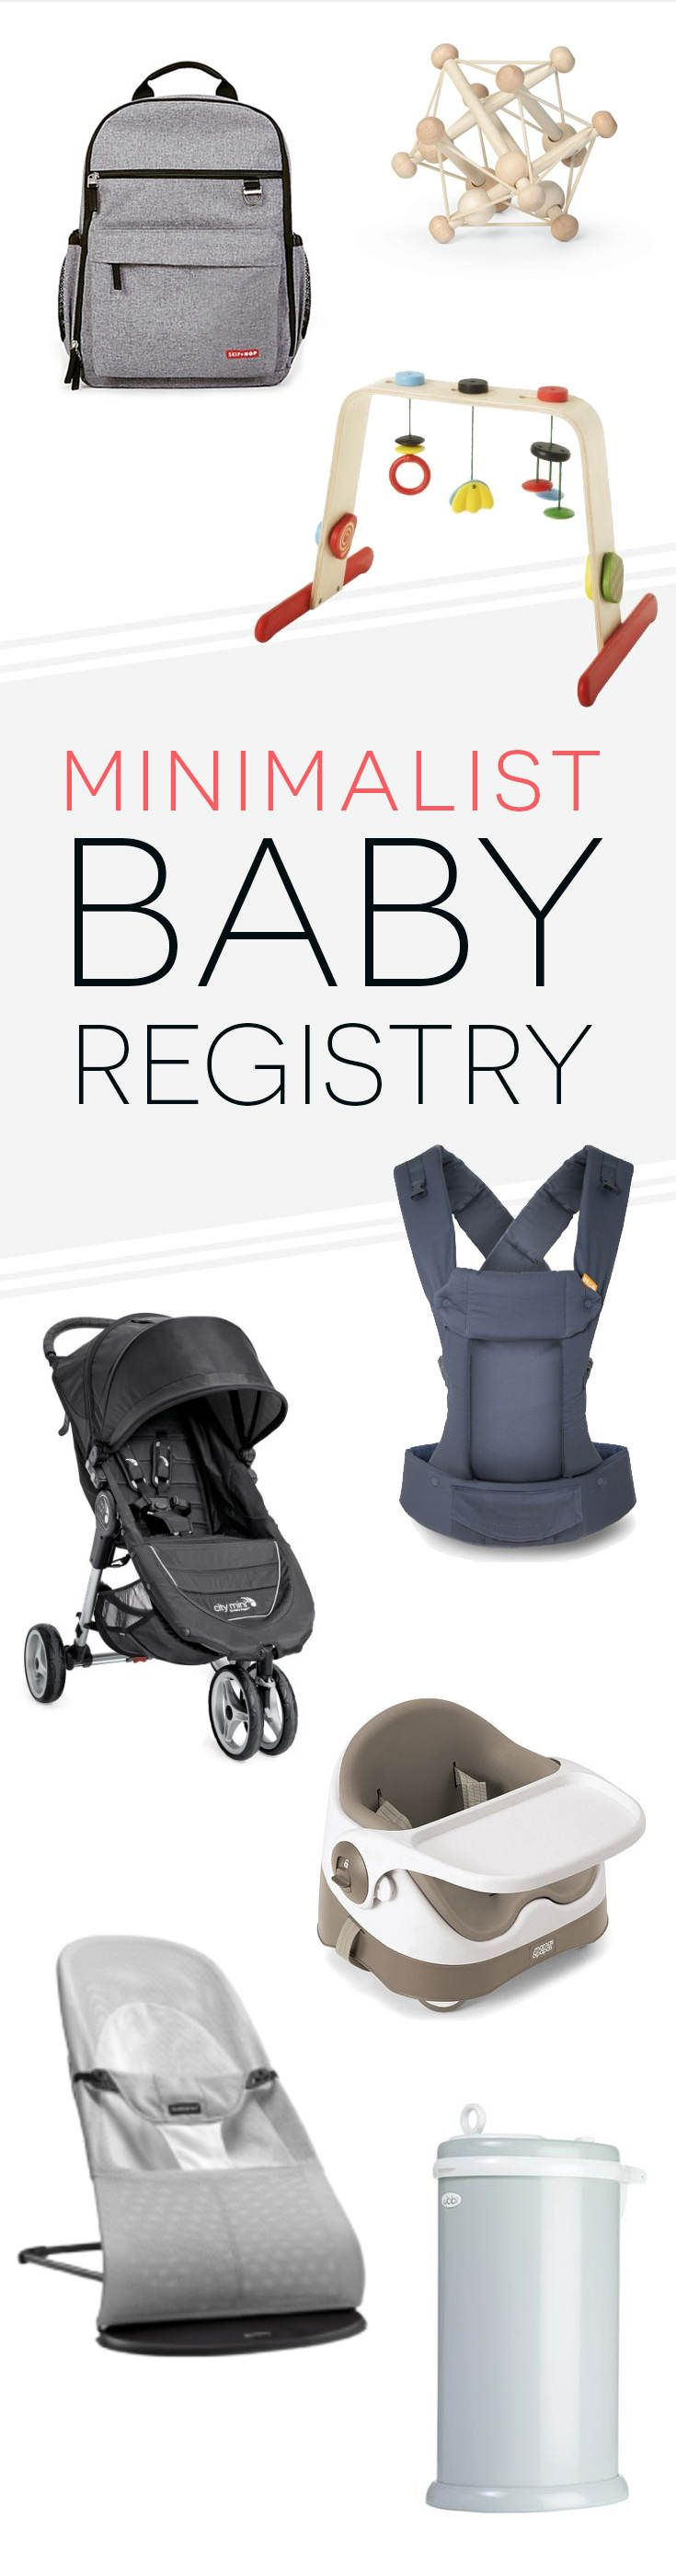 Recommendations for great minimalist items from the Fisher Price Rock 'n Play Sleeper to the City Mini Stroller to the BabyBjorn Baby Bouncer Balance (and much more).